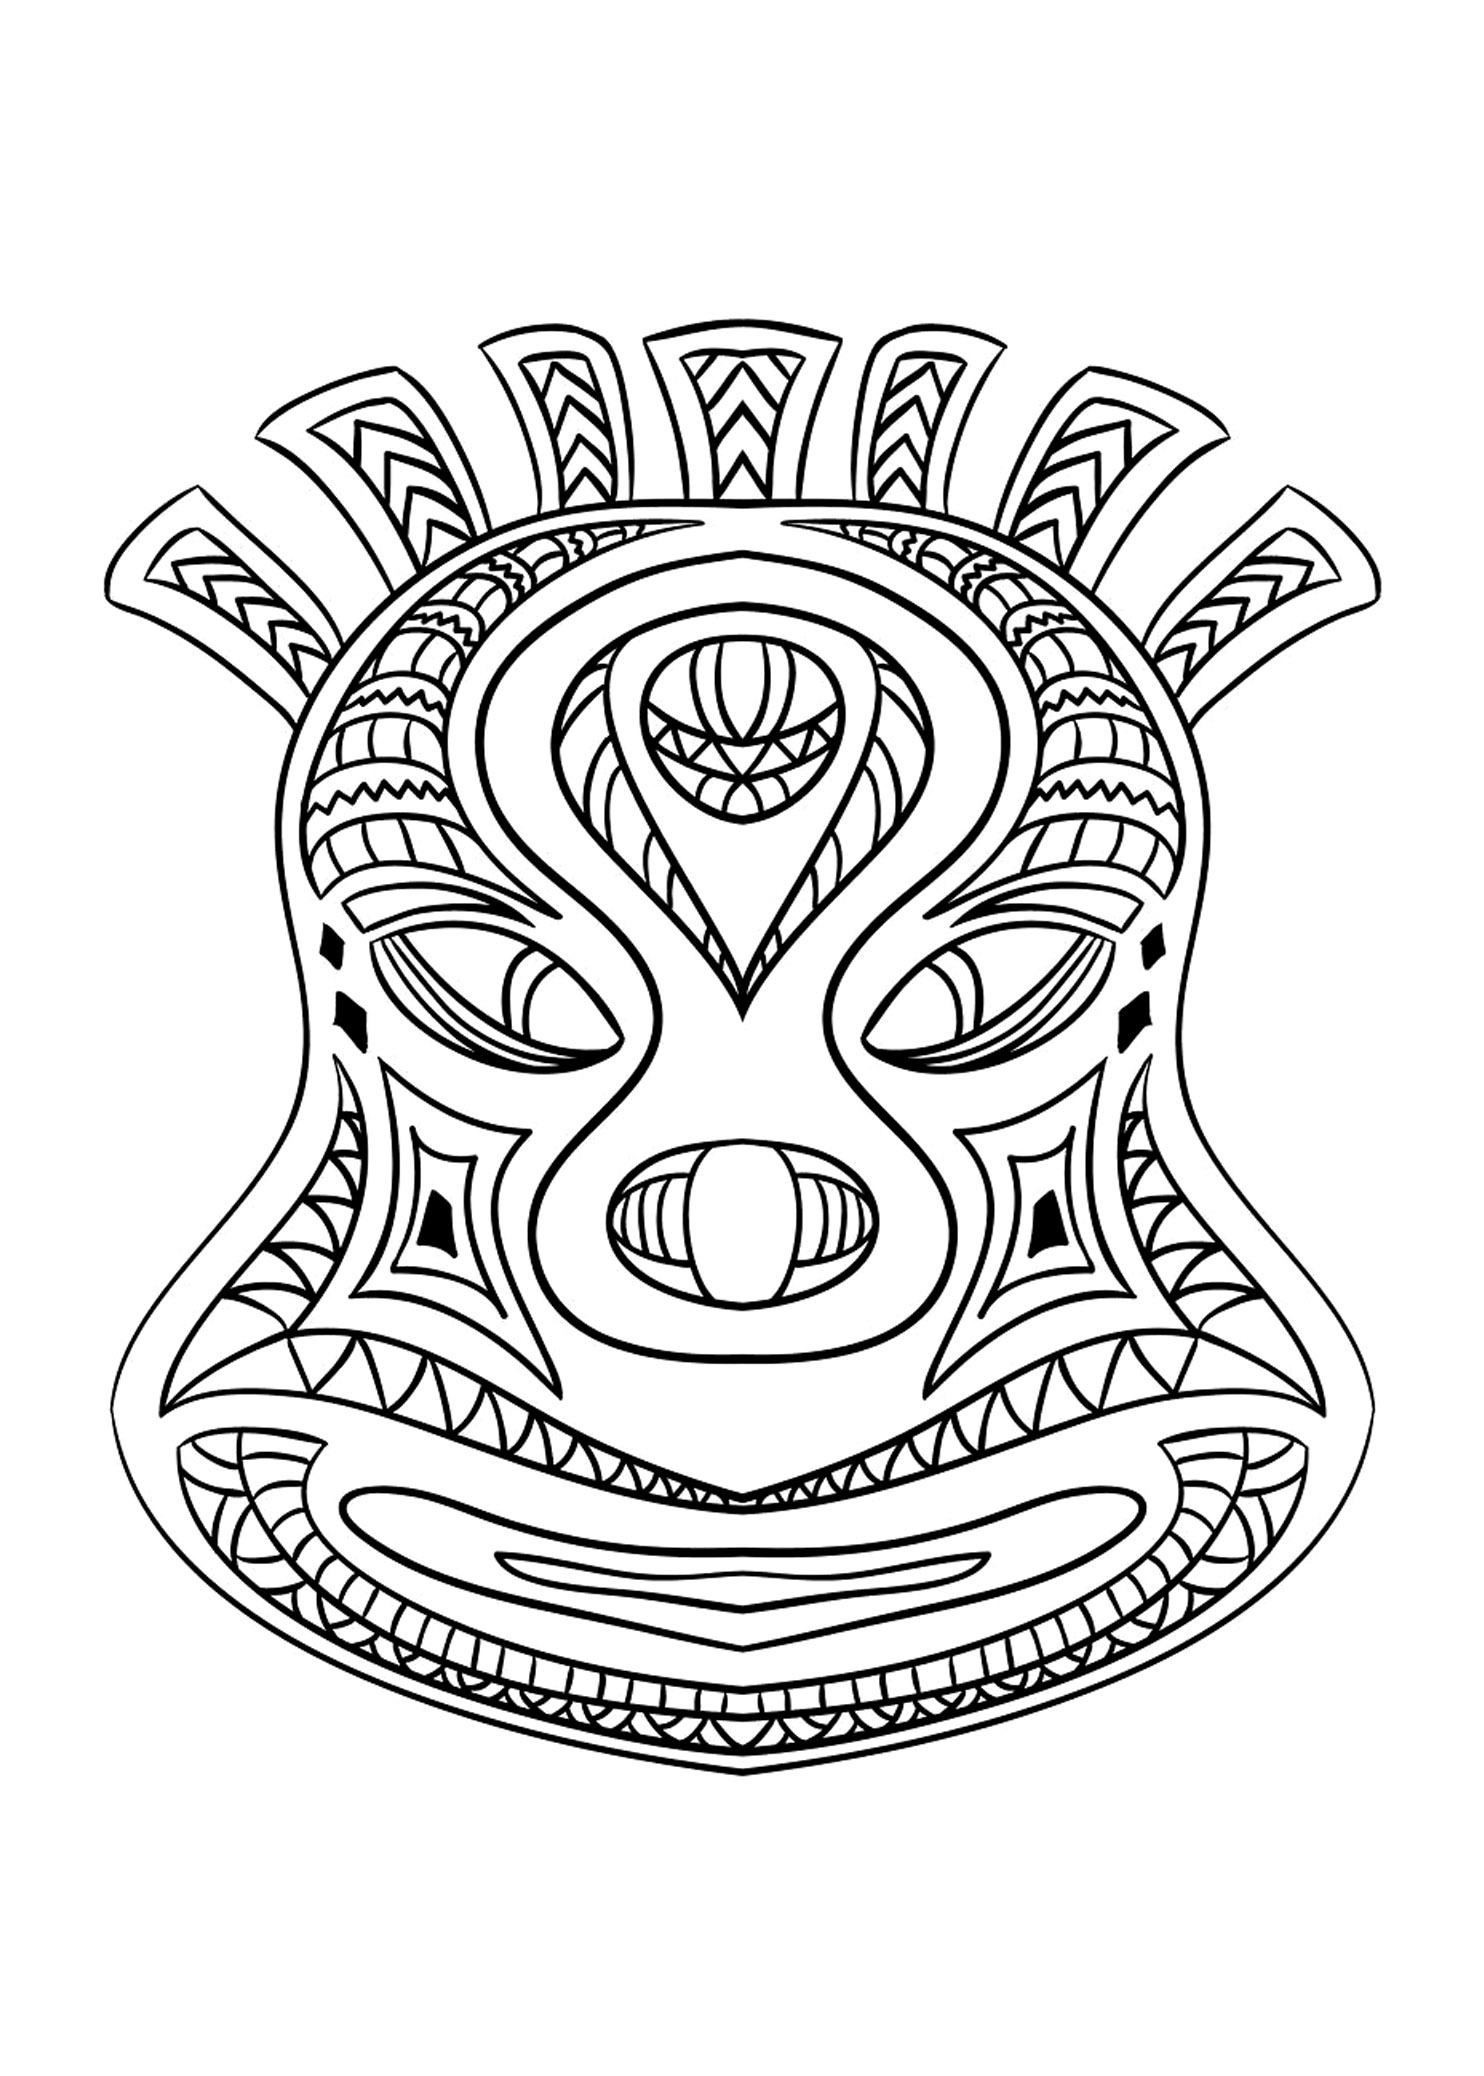 printable african masks coloring pages african mask coloring page coloring home african coloring printable masks pages